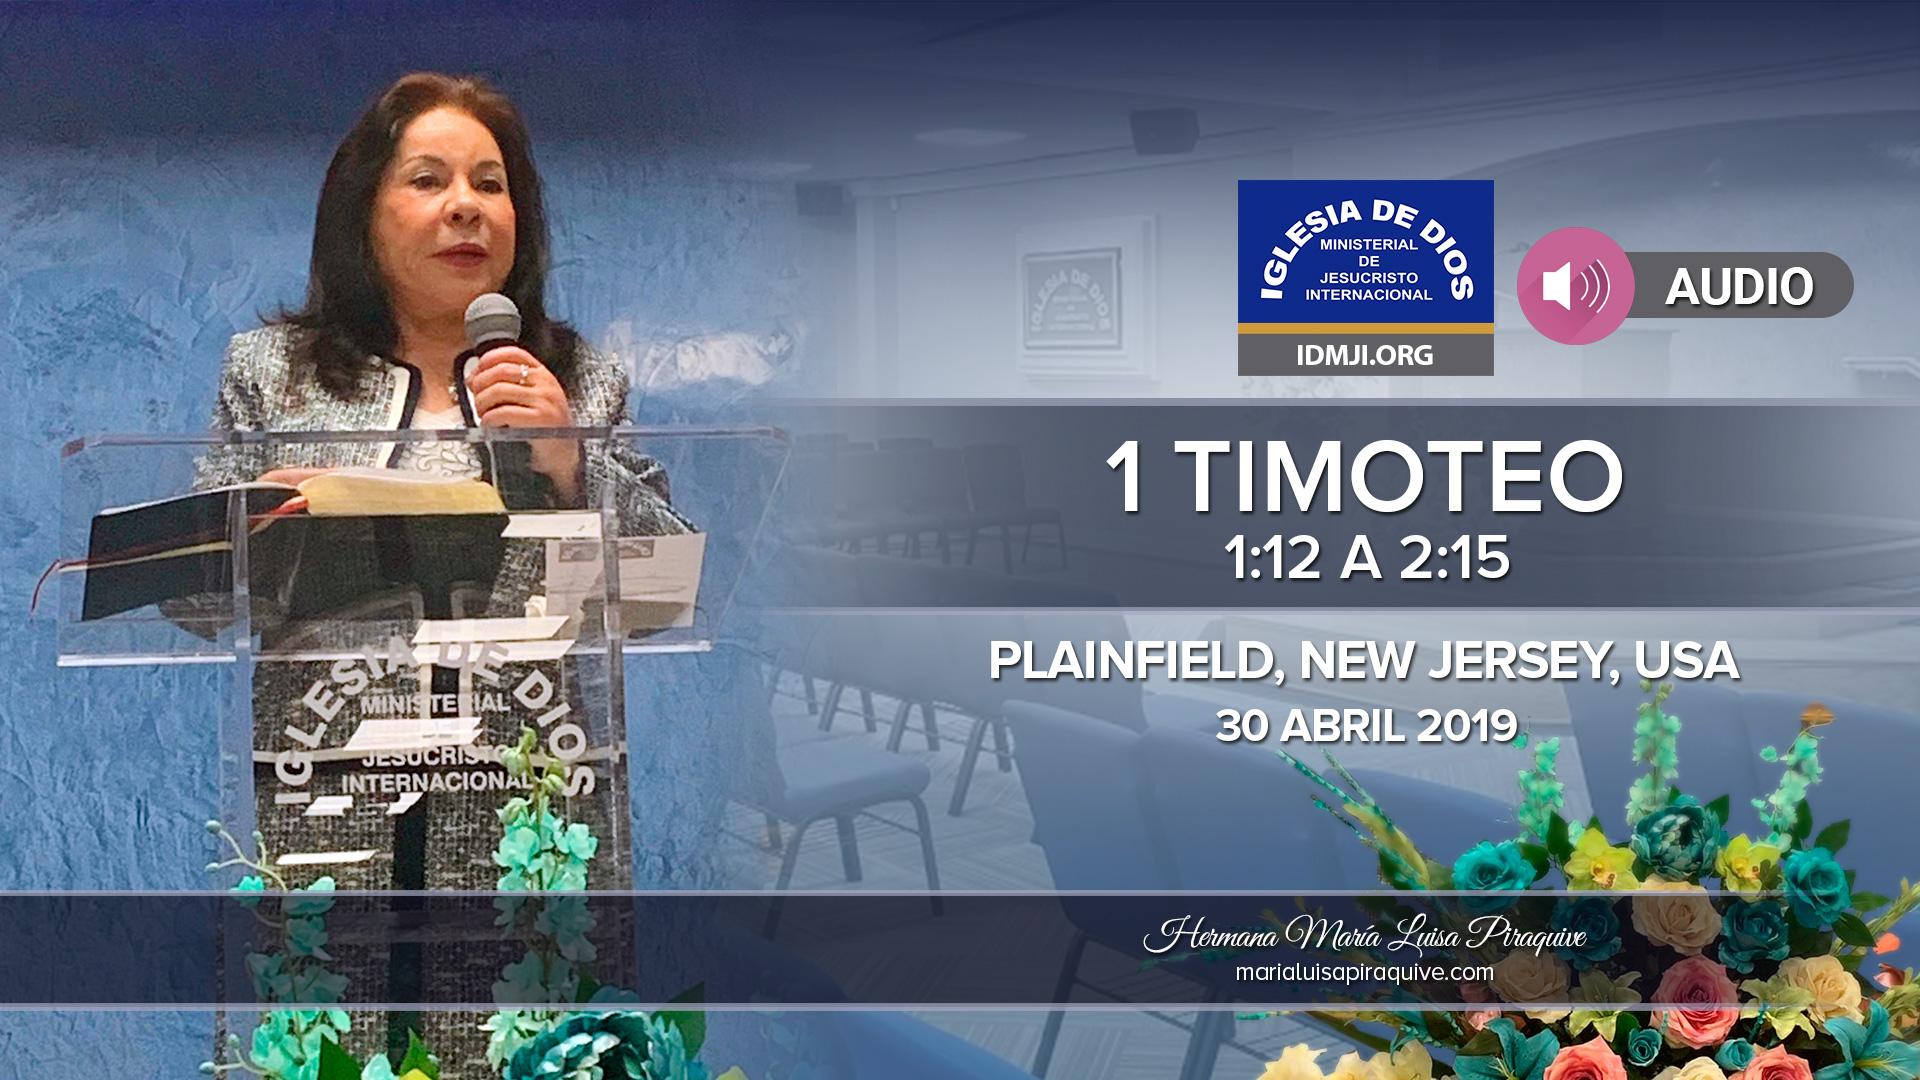 Audio: 1 Timoteo 1:12 a 2:15